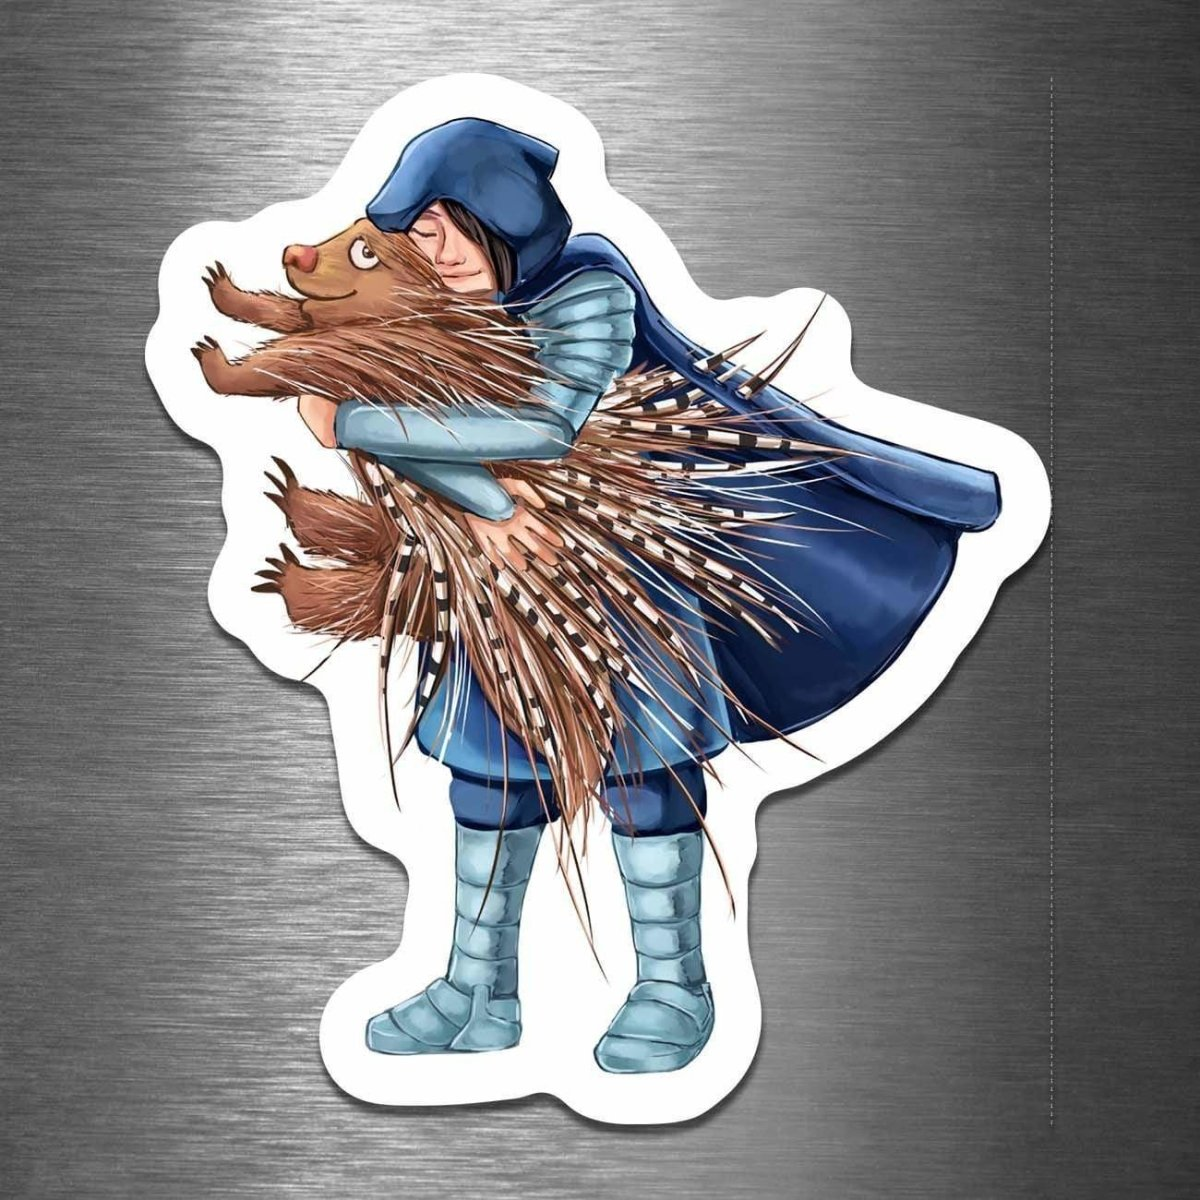 How to Hug a Porcupine - Vinyl Sticker - Dan Pearce Sticker Shop